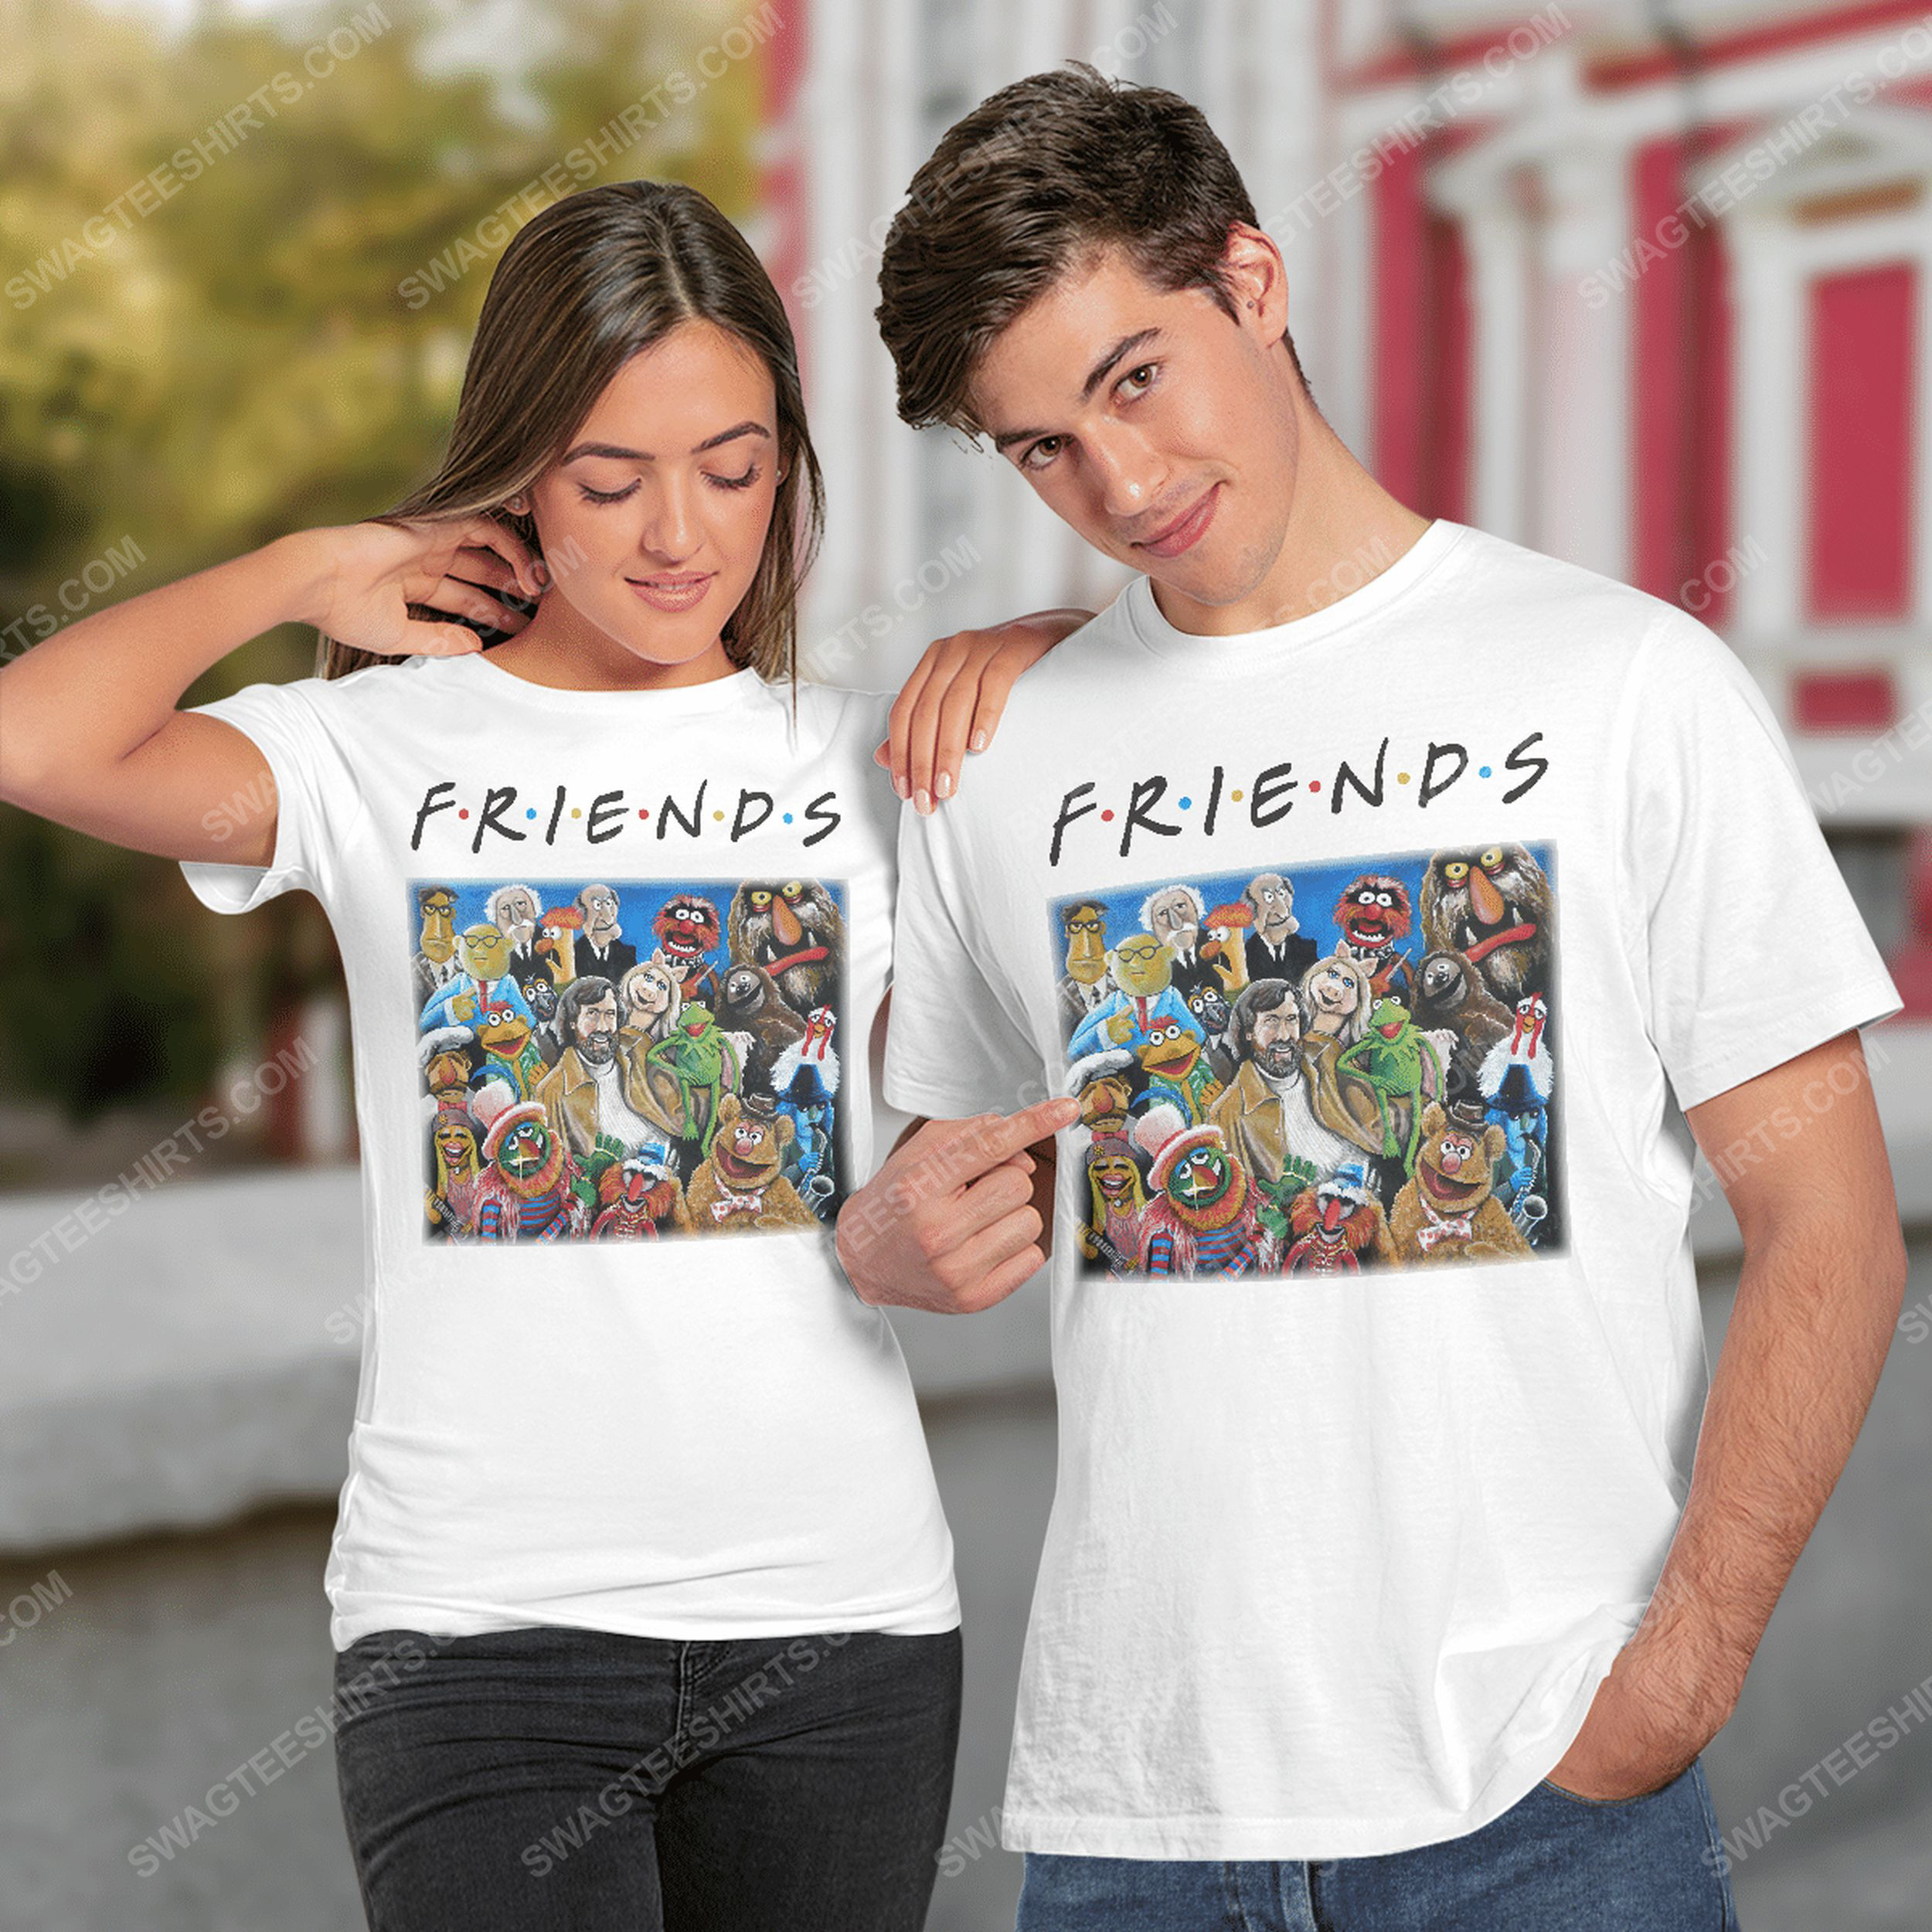 Friends tv show the muppets characters tshirt(1)